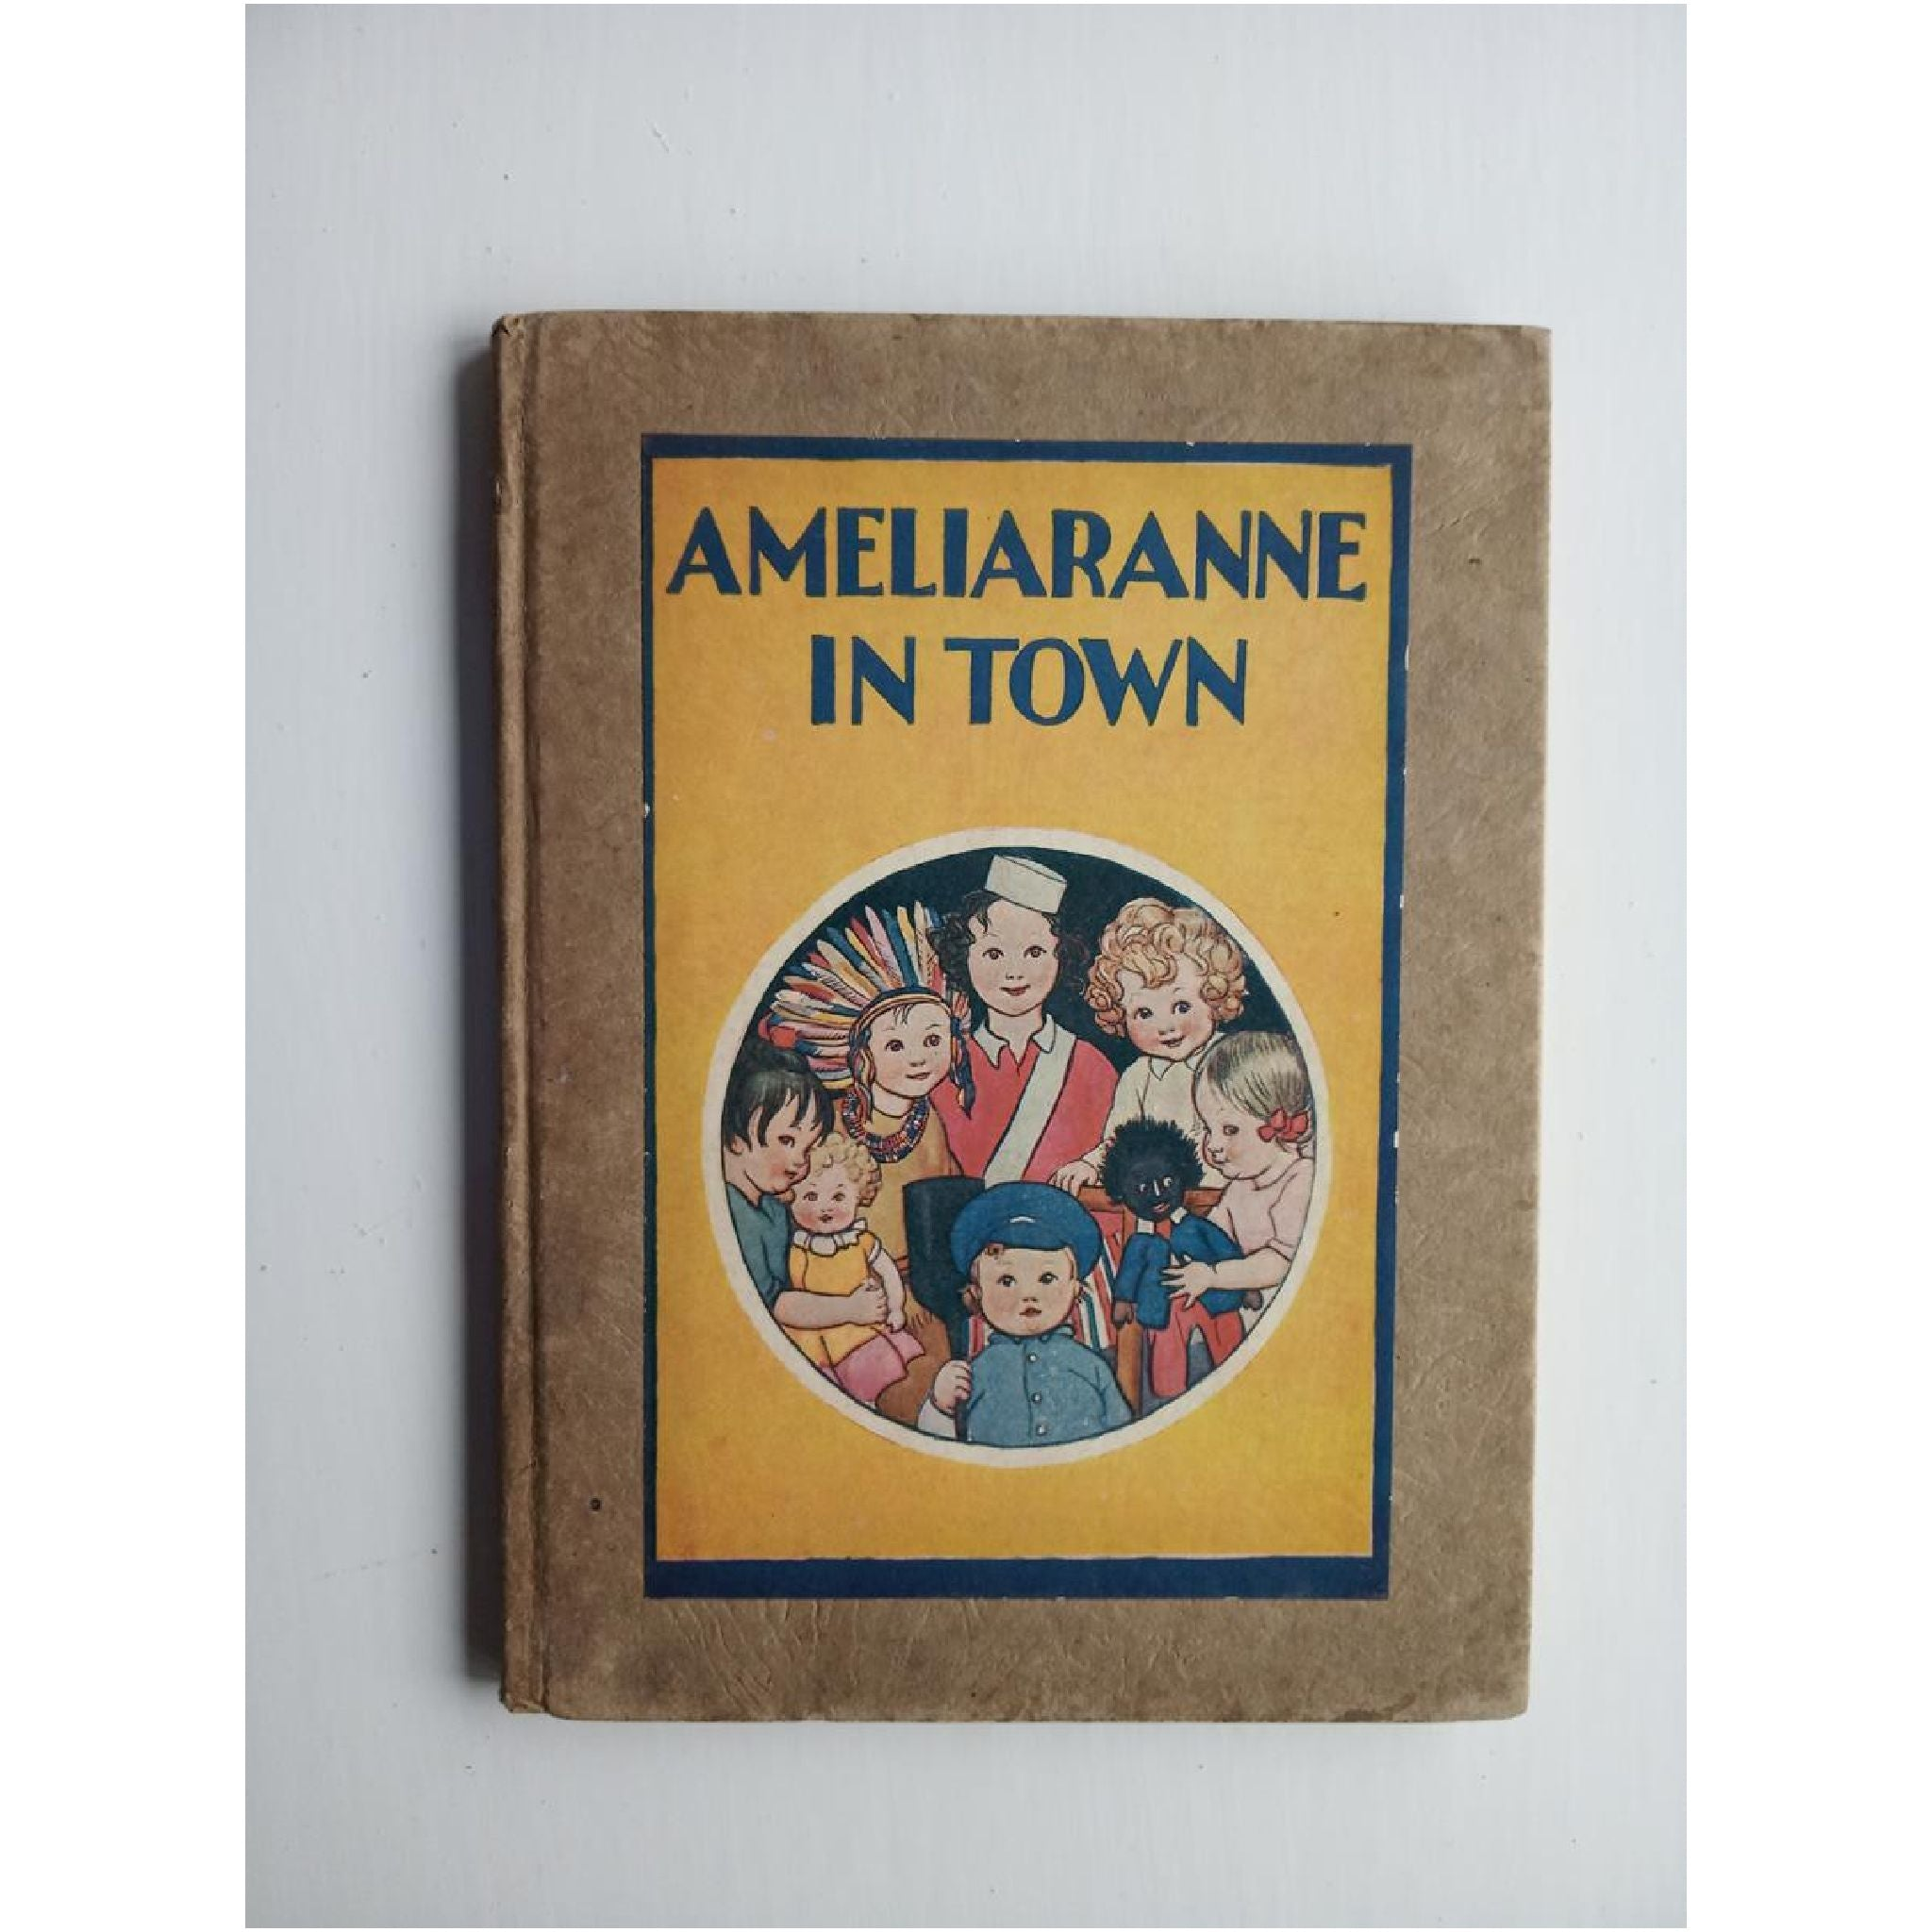 Ameliaranne in Town by Natalie Joan